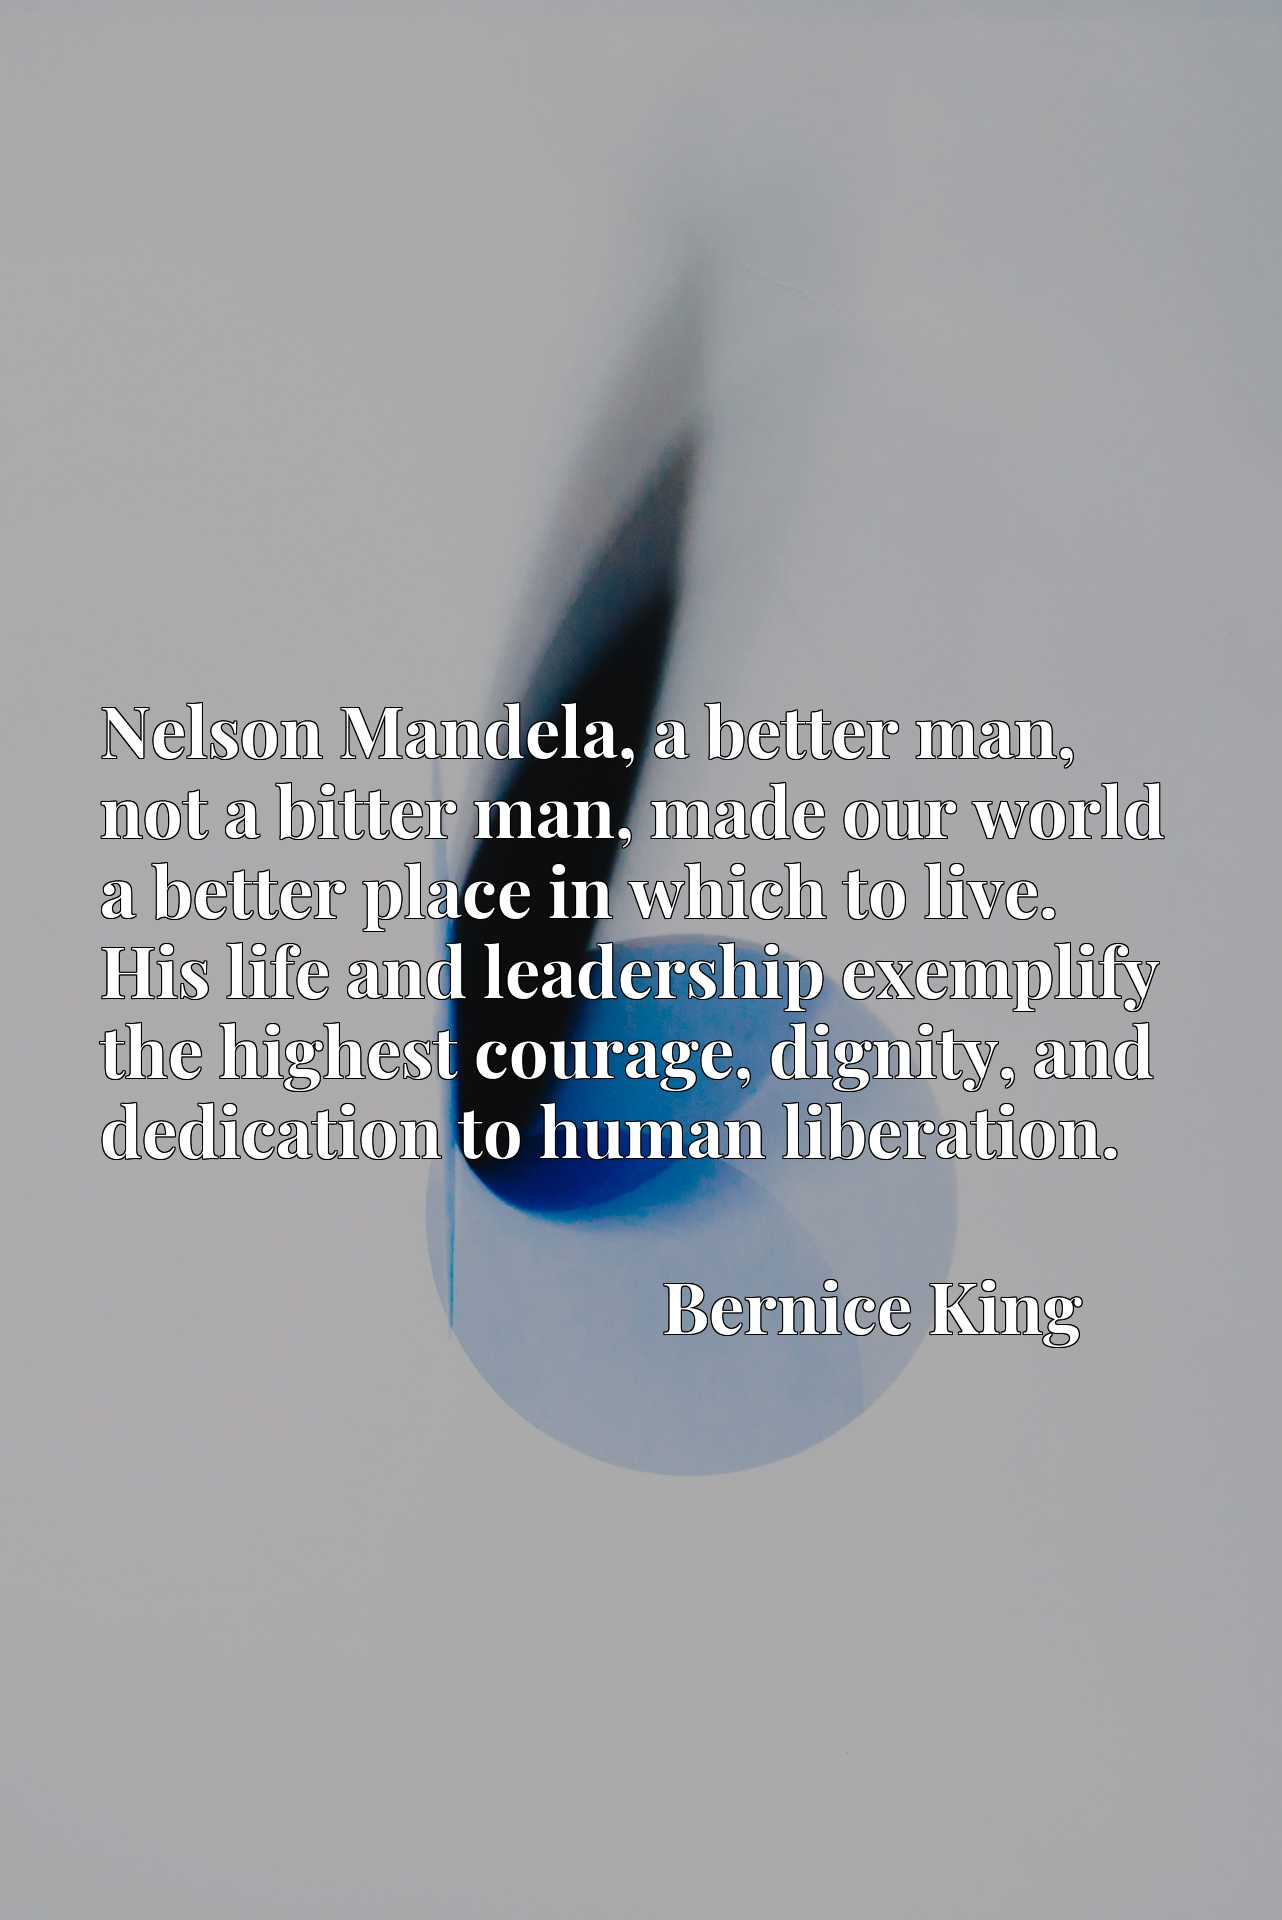 Nelson Mandela, a better man, not a bitter man, made our world a better place in which to live. His life and leadership exemplify the highest courage, dignity, and dedication to human liberation.